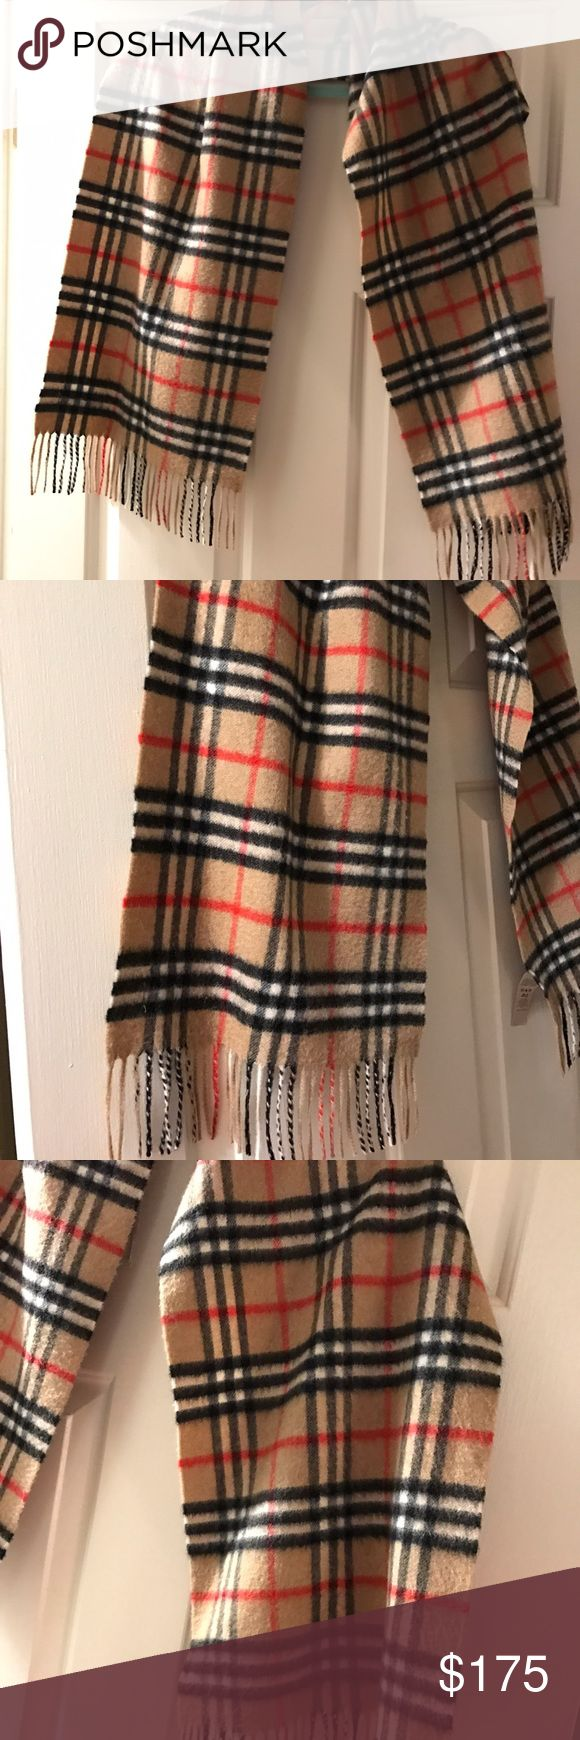 """Authentic Burberry Camel Scarf Cashmere 100% Authentic Burberry scarf. Unlike a lot being sold on here. This scarf is in excellent condition. No tears or holes. Smoke free home. 100% Cashmere so it is extremely soft and warm. Measurements are estimated to be about 60"""" long by 12"""" wide. Burberry Accessories Scarves & Wraps"""